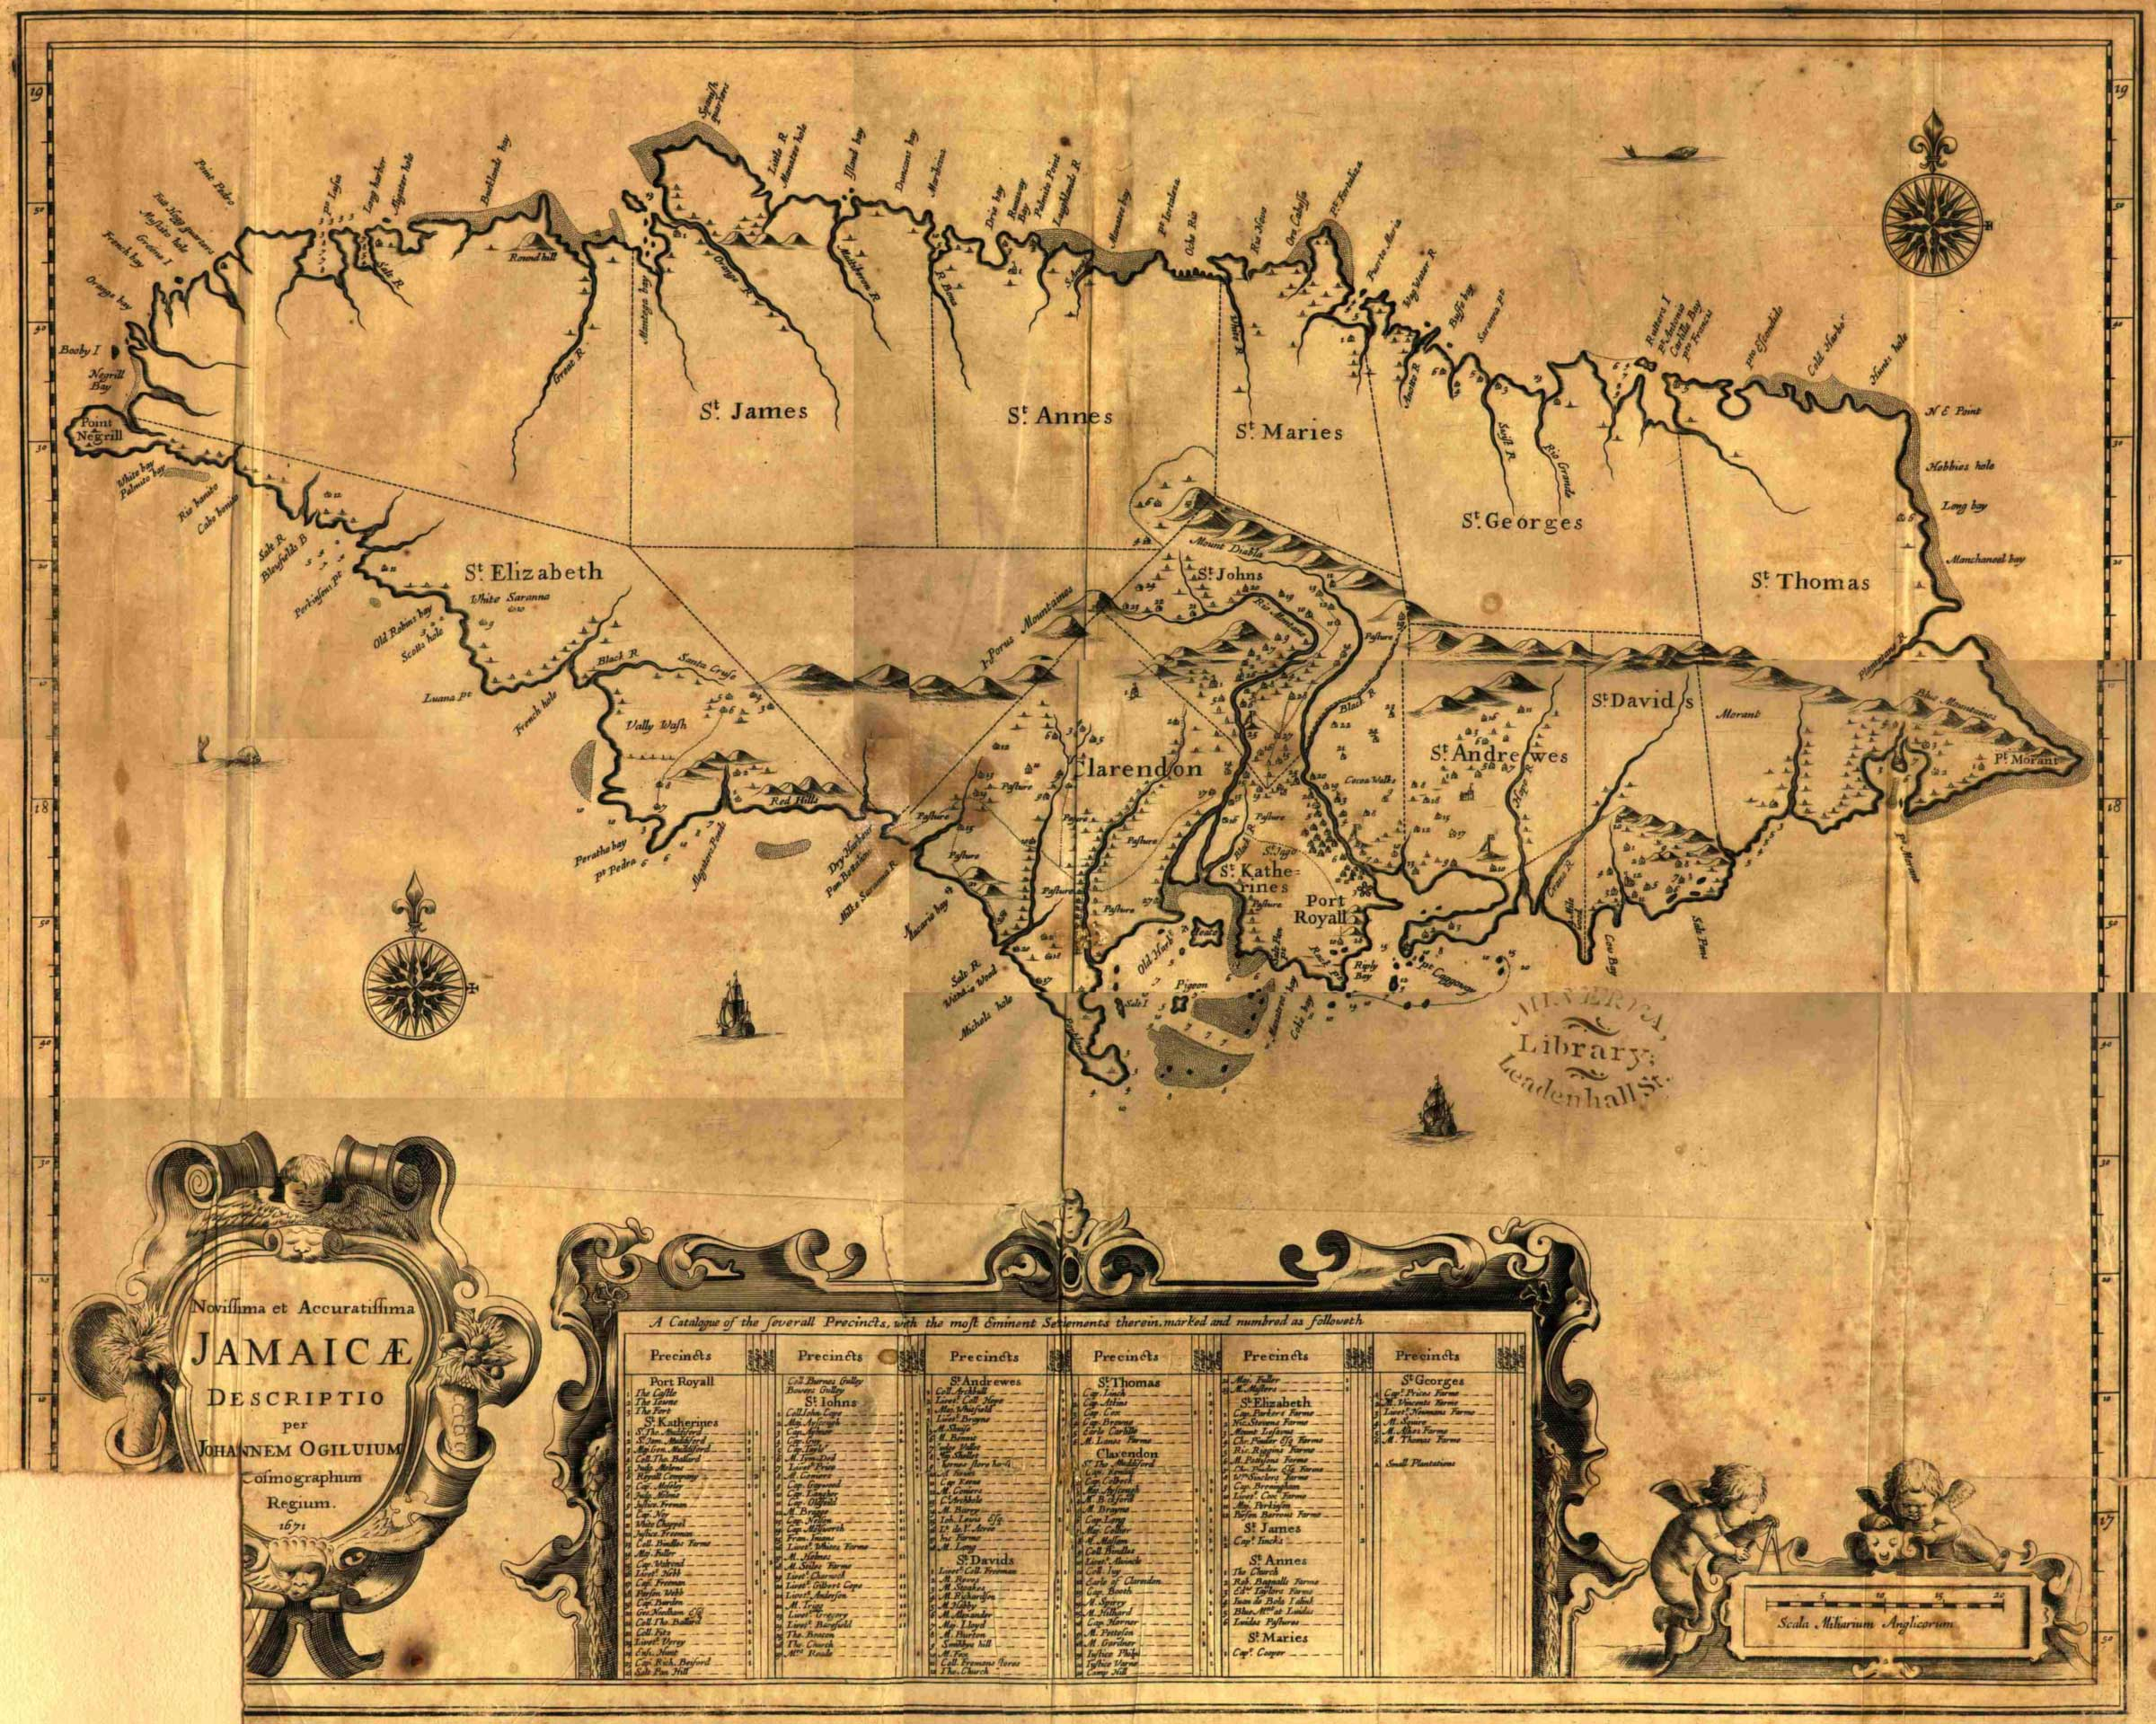 Jamaica1671ogilby large map